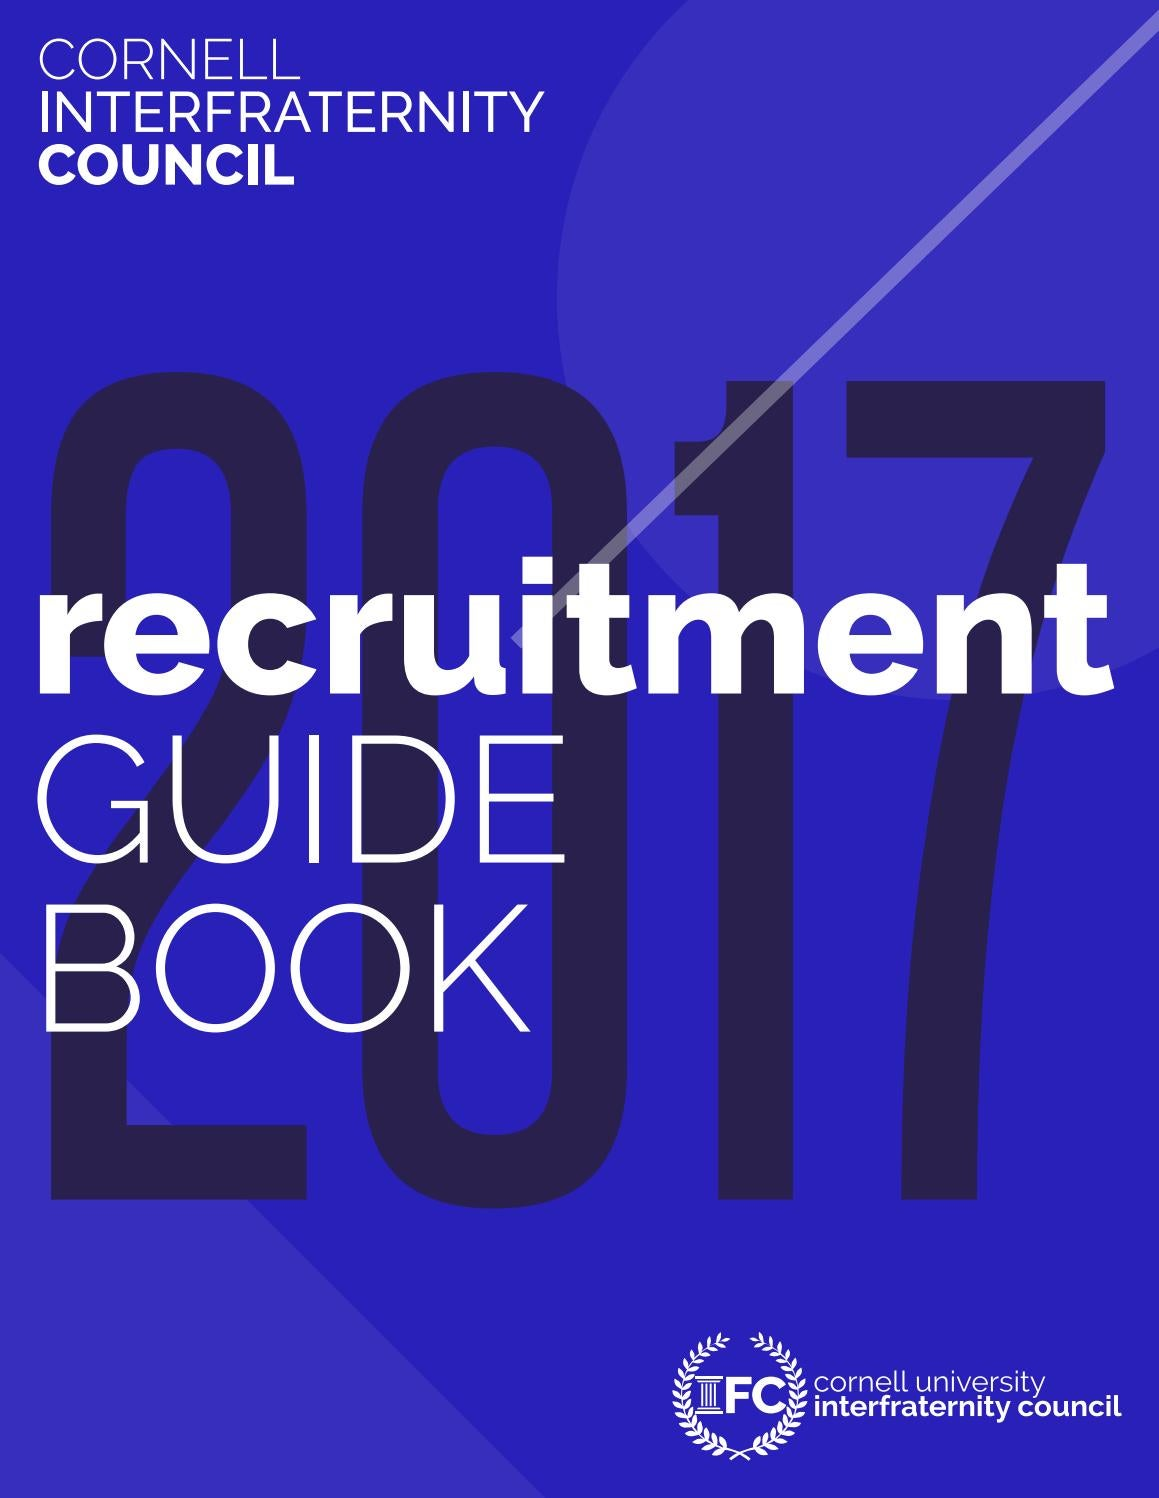 cornell likely letter cornell ifc recruitment guidebook 2017 by cornell ifc issuu 28697